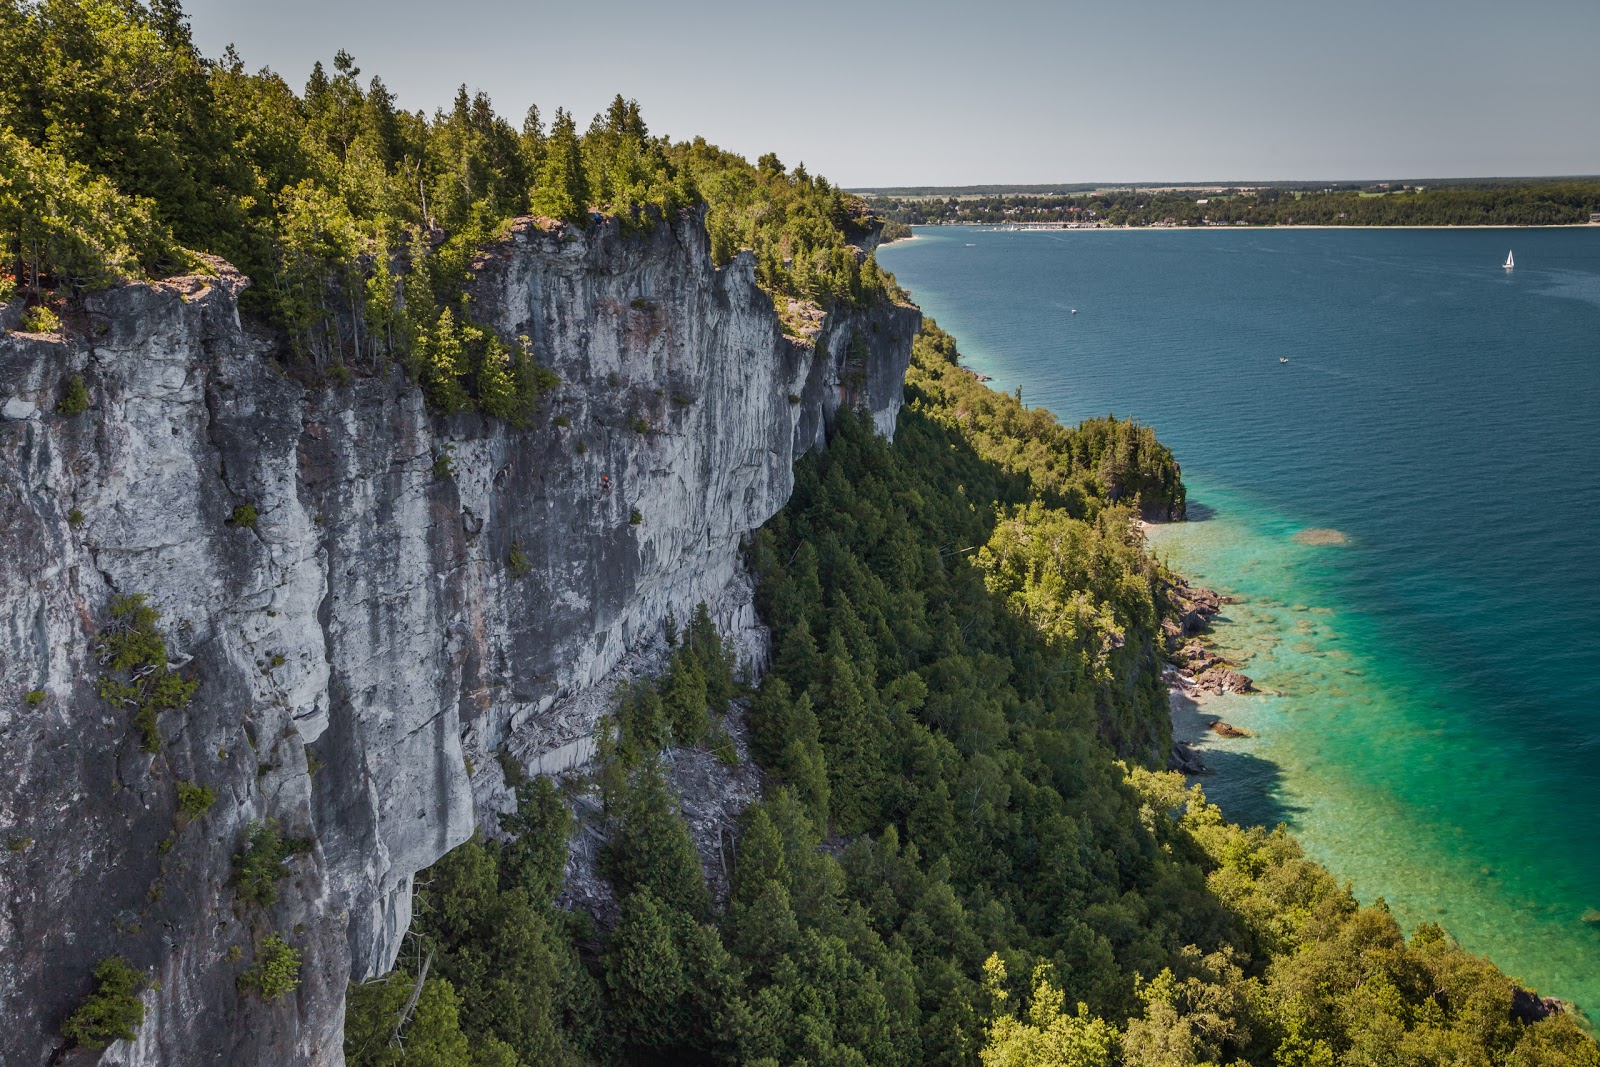 RUN THE BRUCE - AN EPIC JOURNEY FROM LION'S HEAD TO TOBERMORY